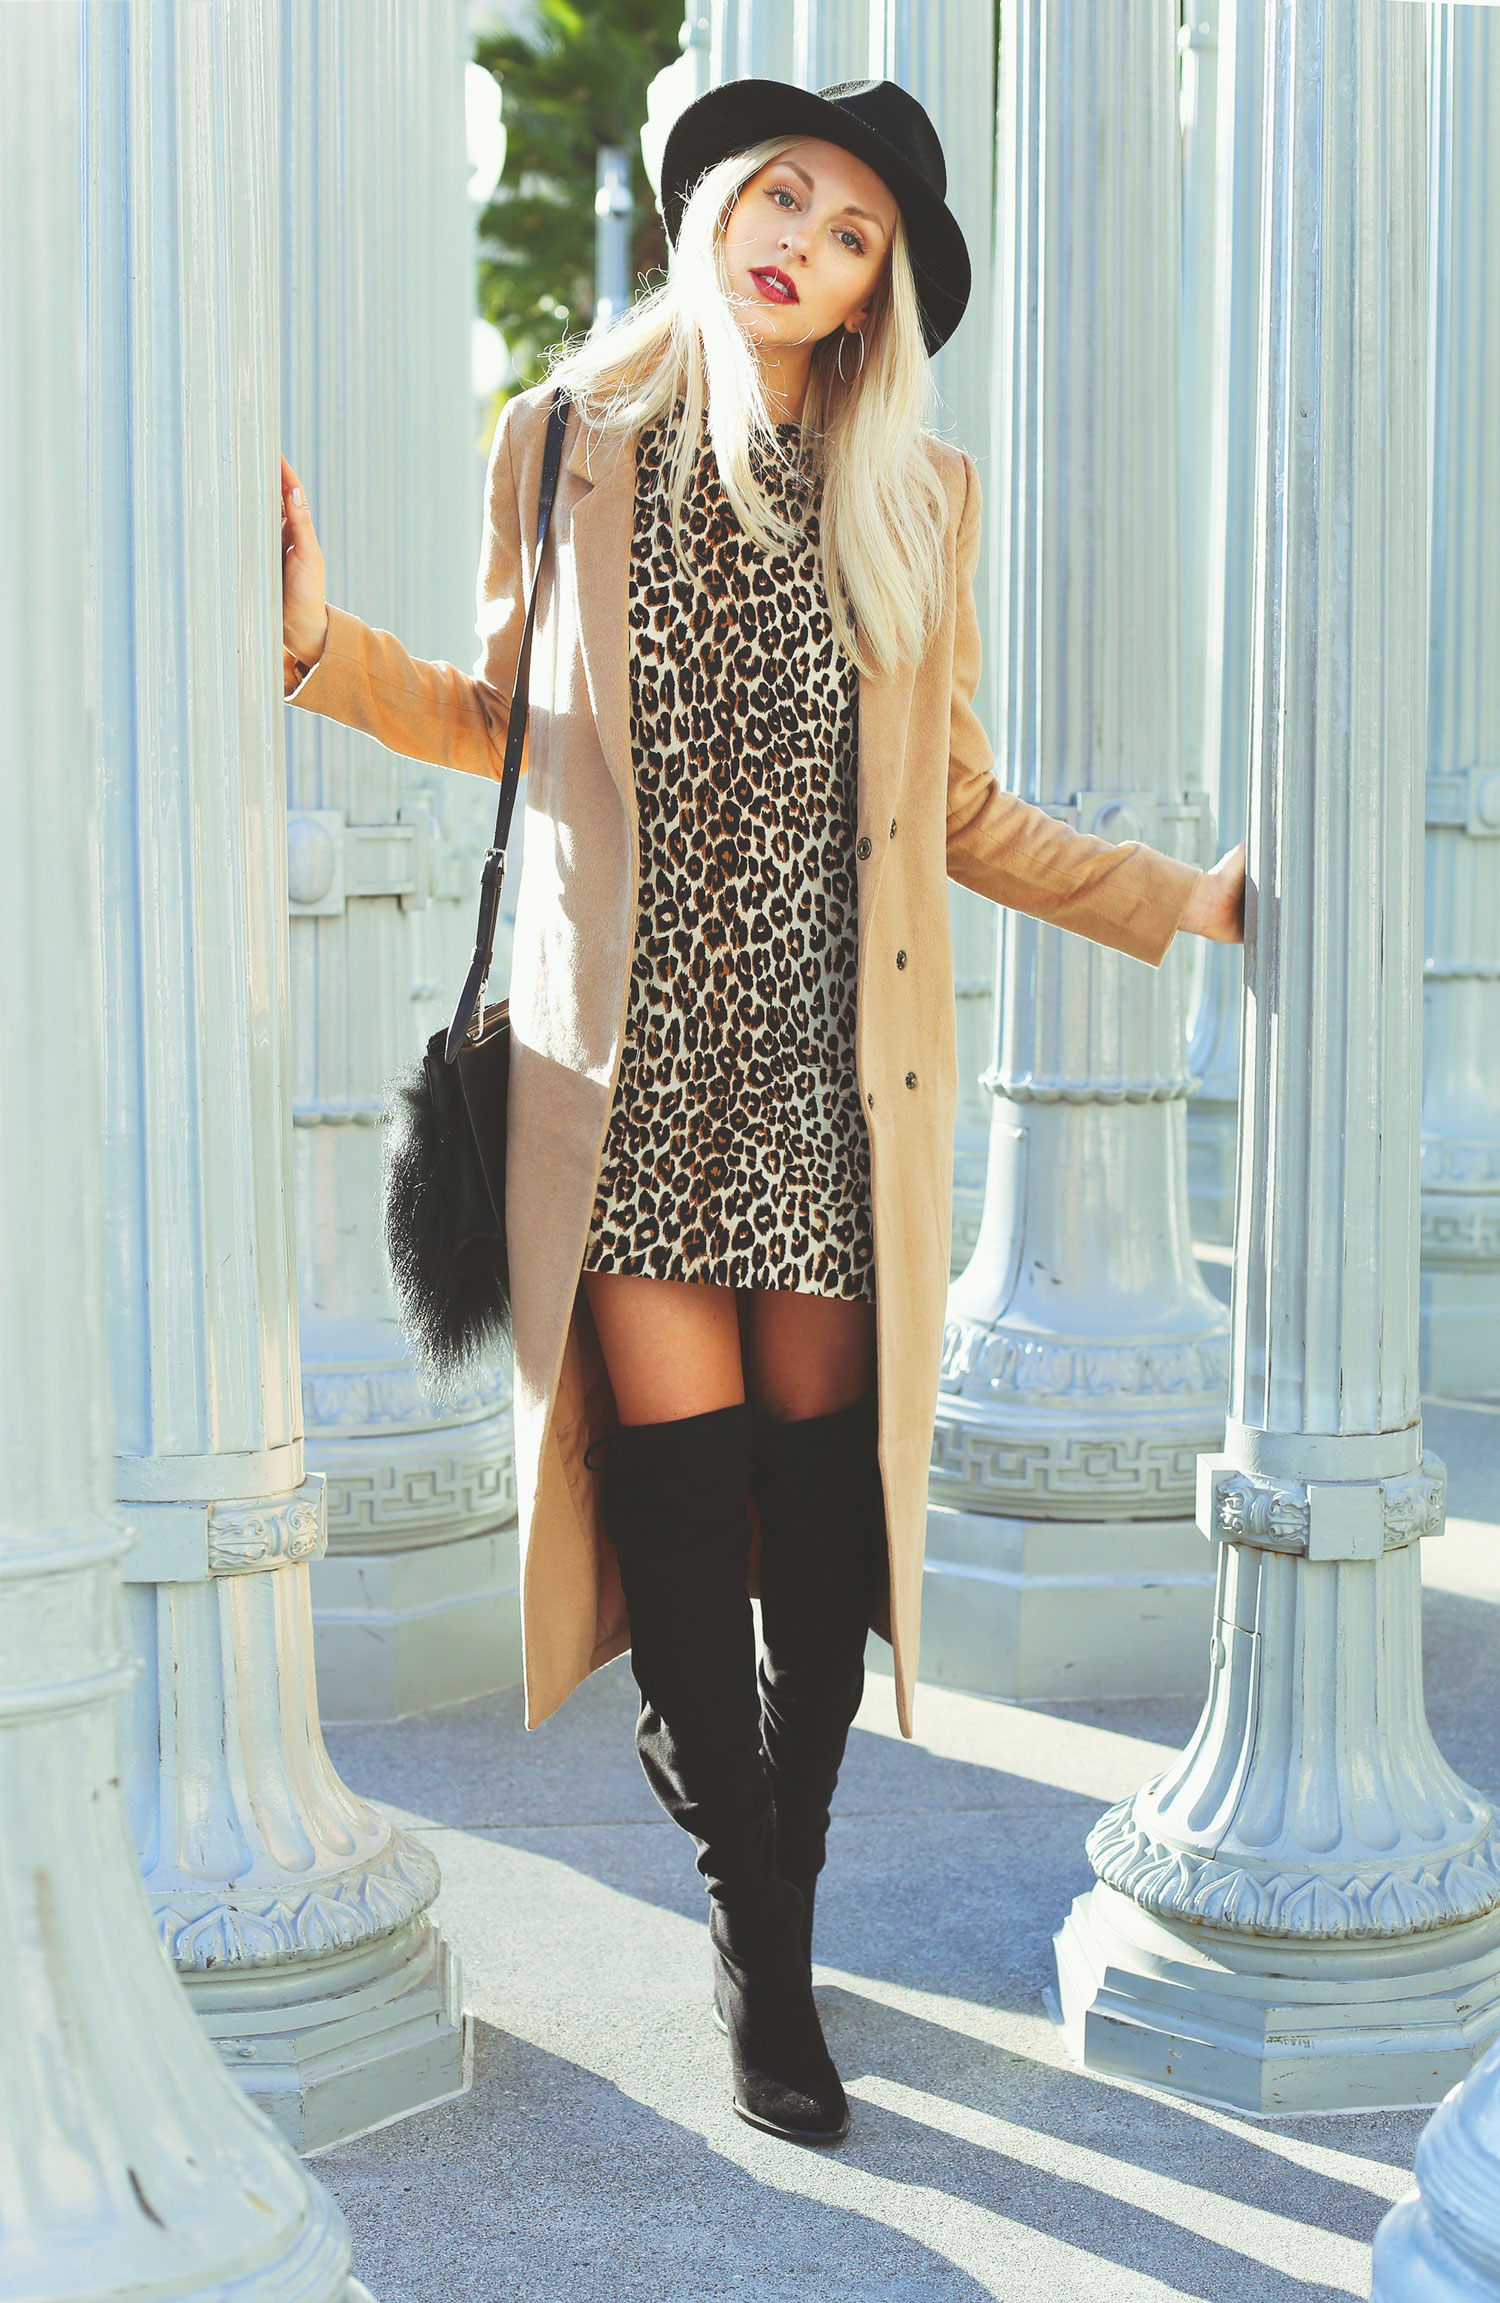 The Camel Coat It Is A Classic Just The Design